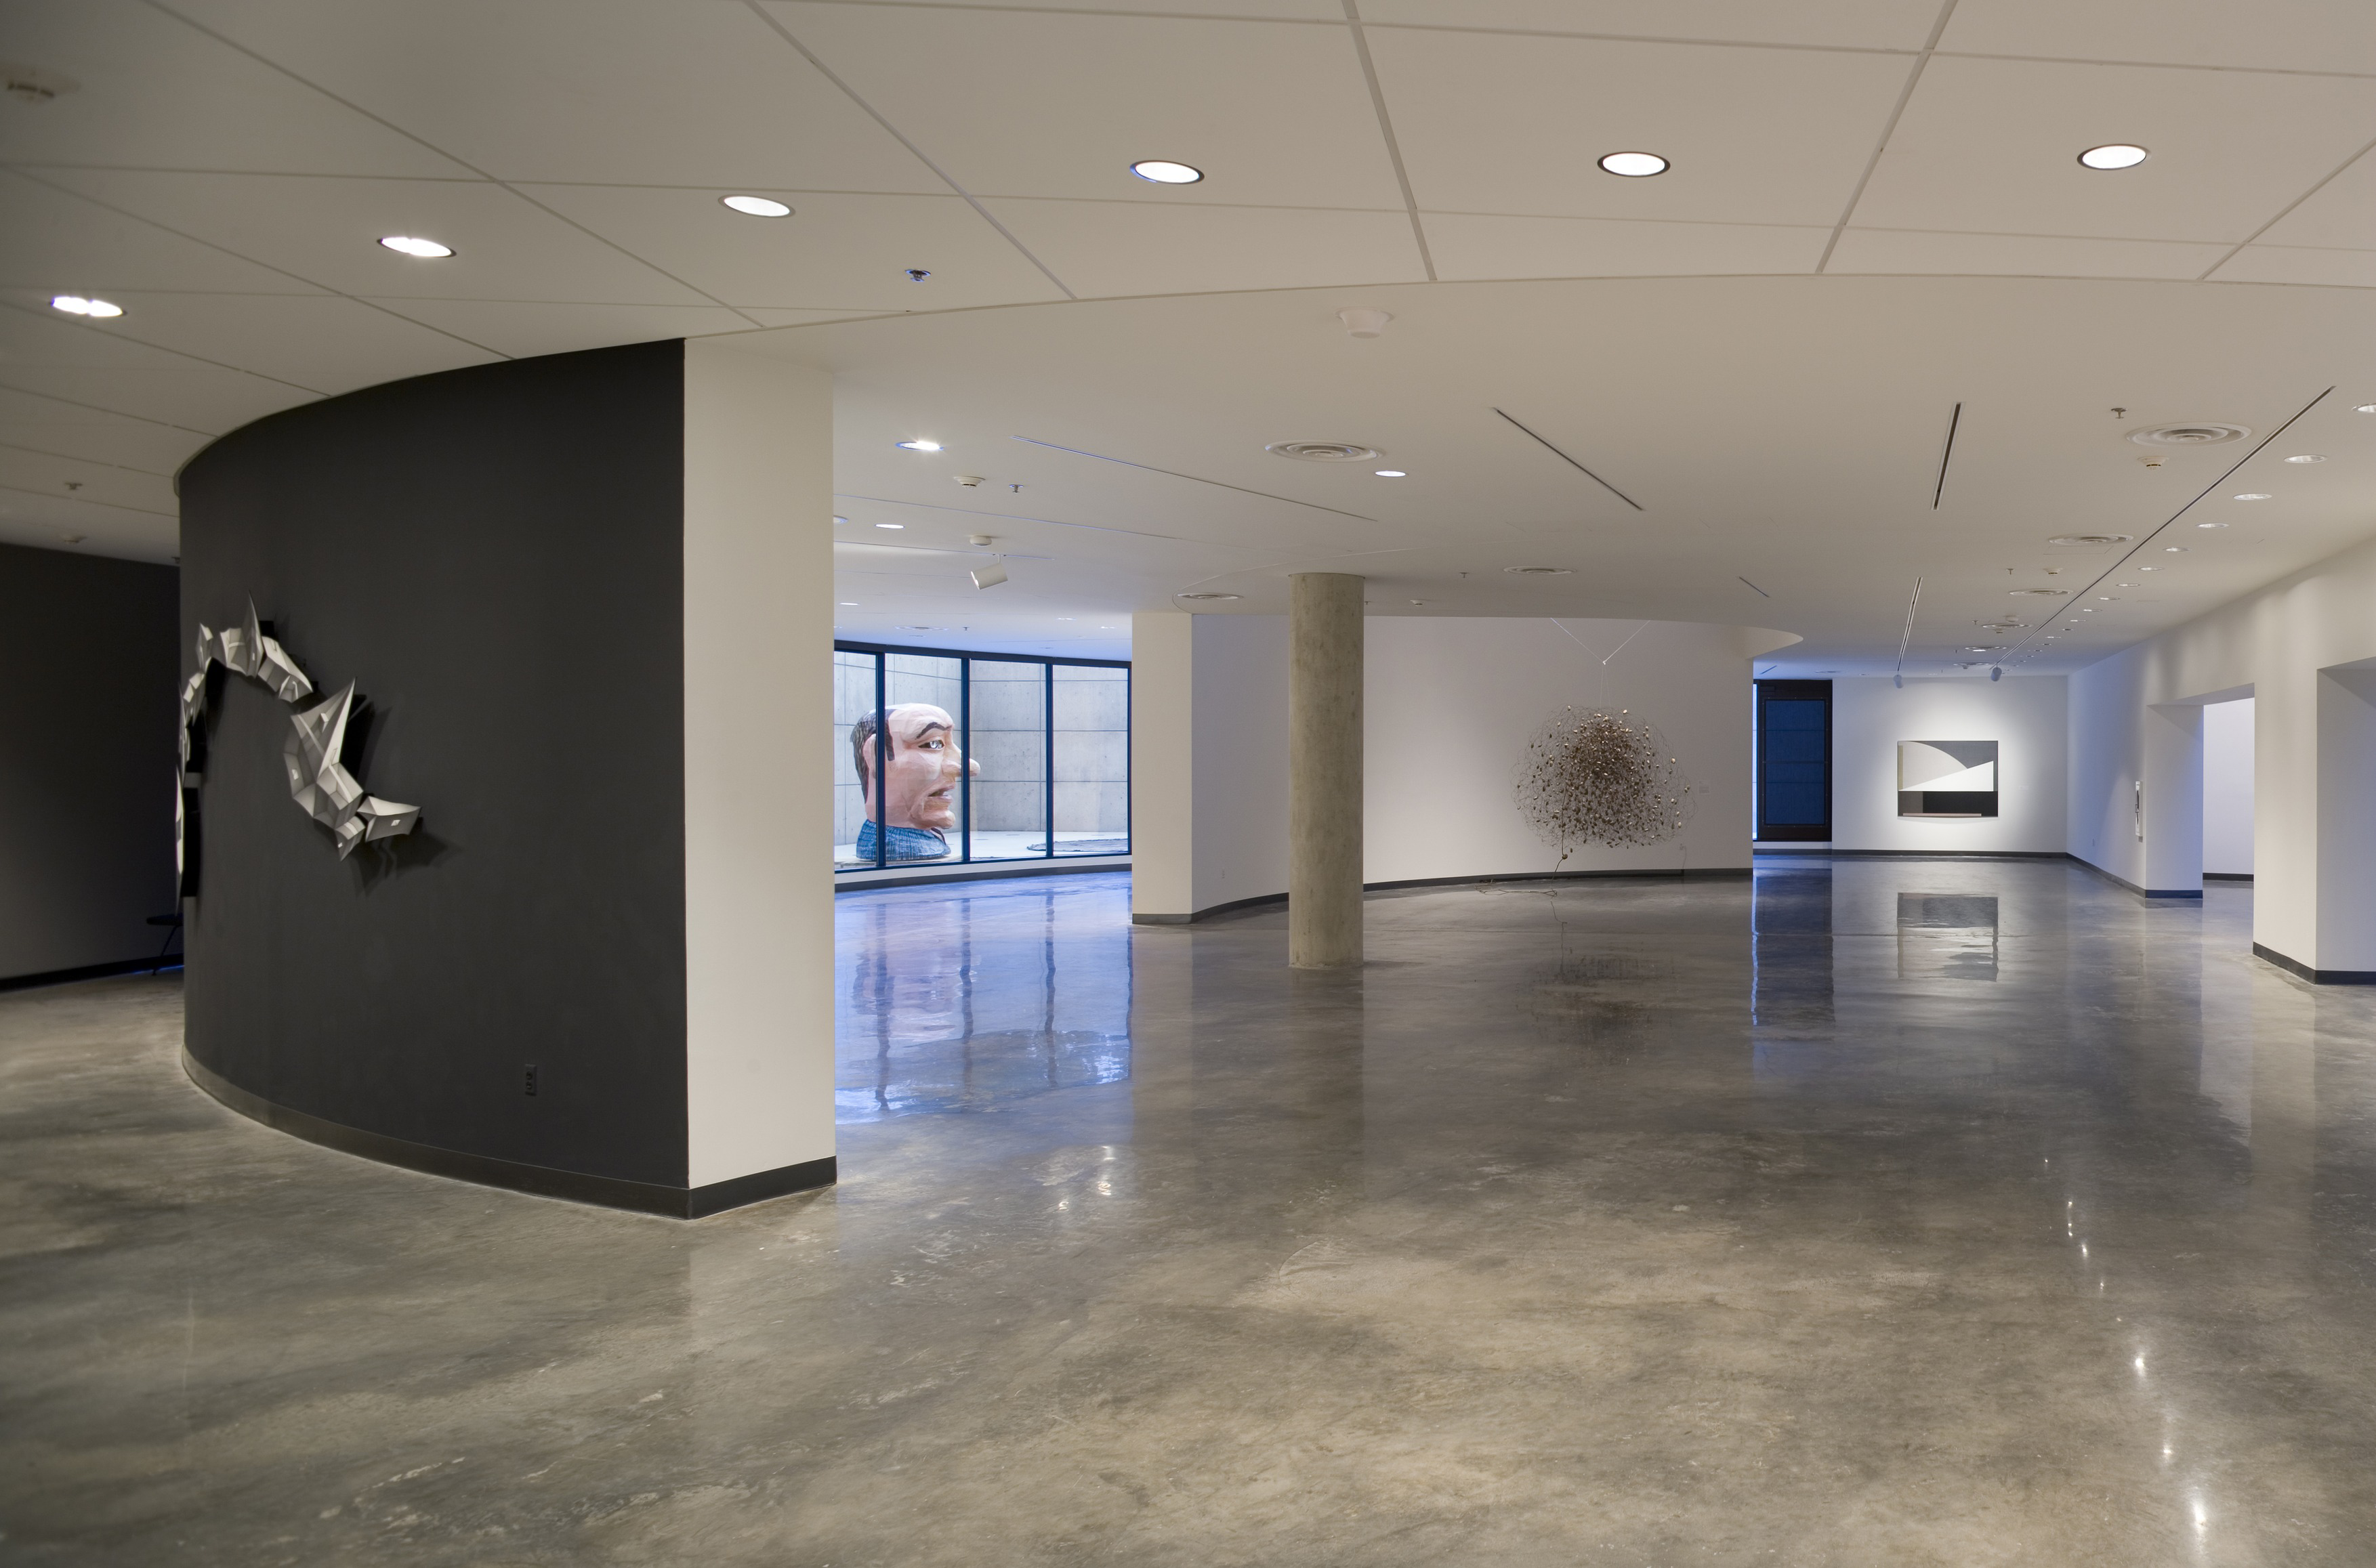 view of gallery space